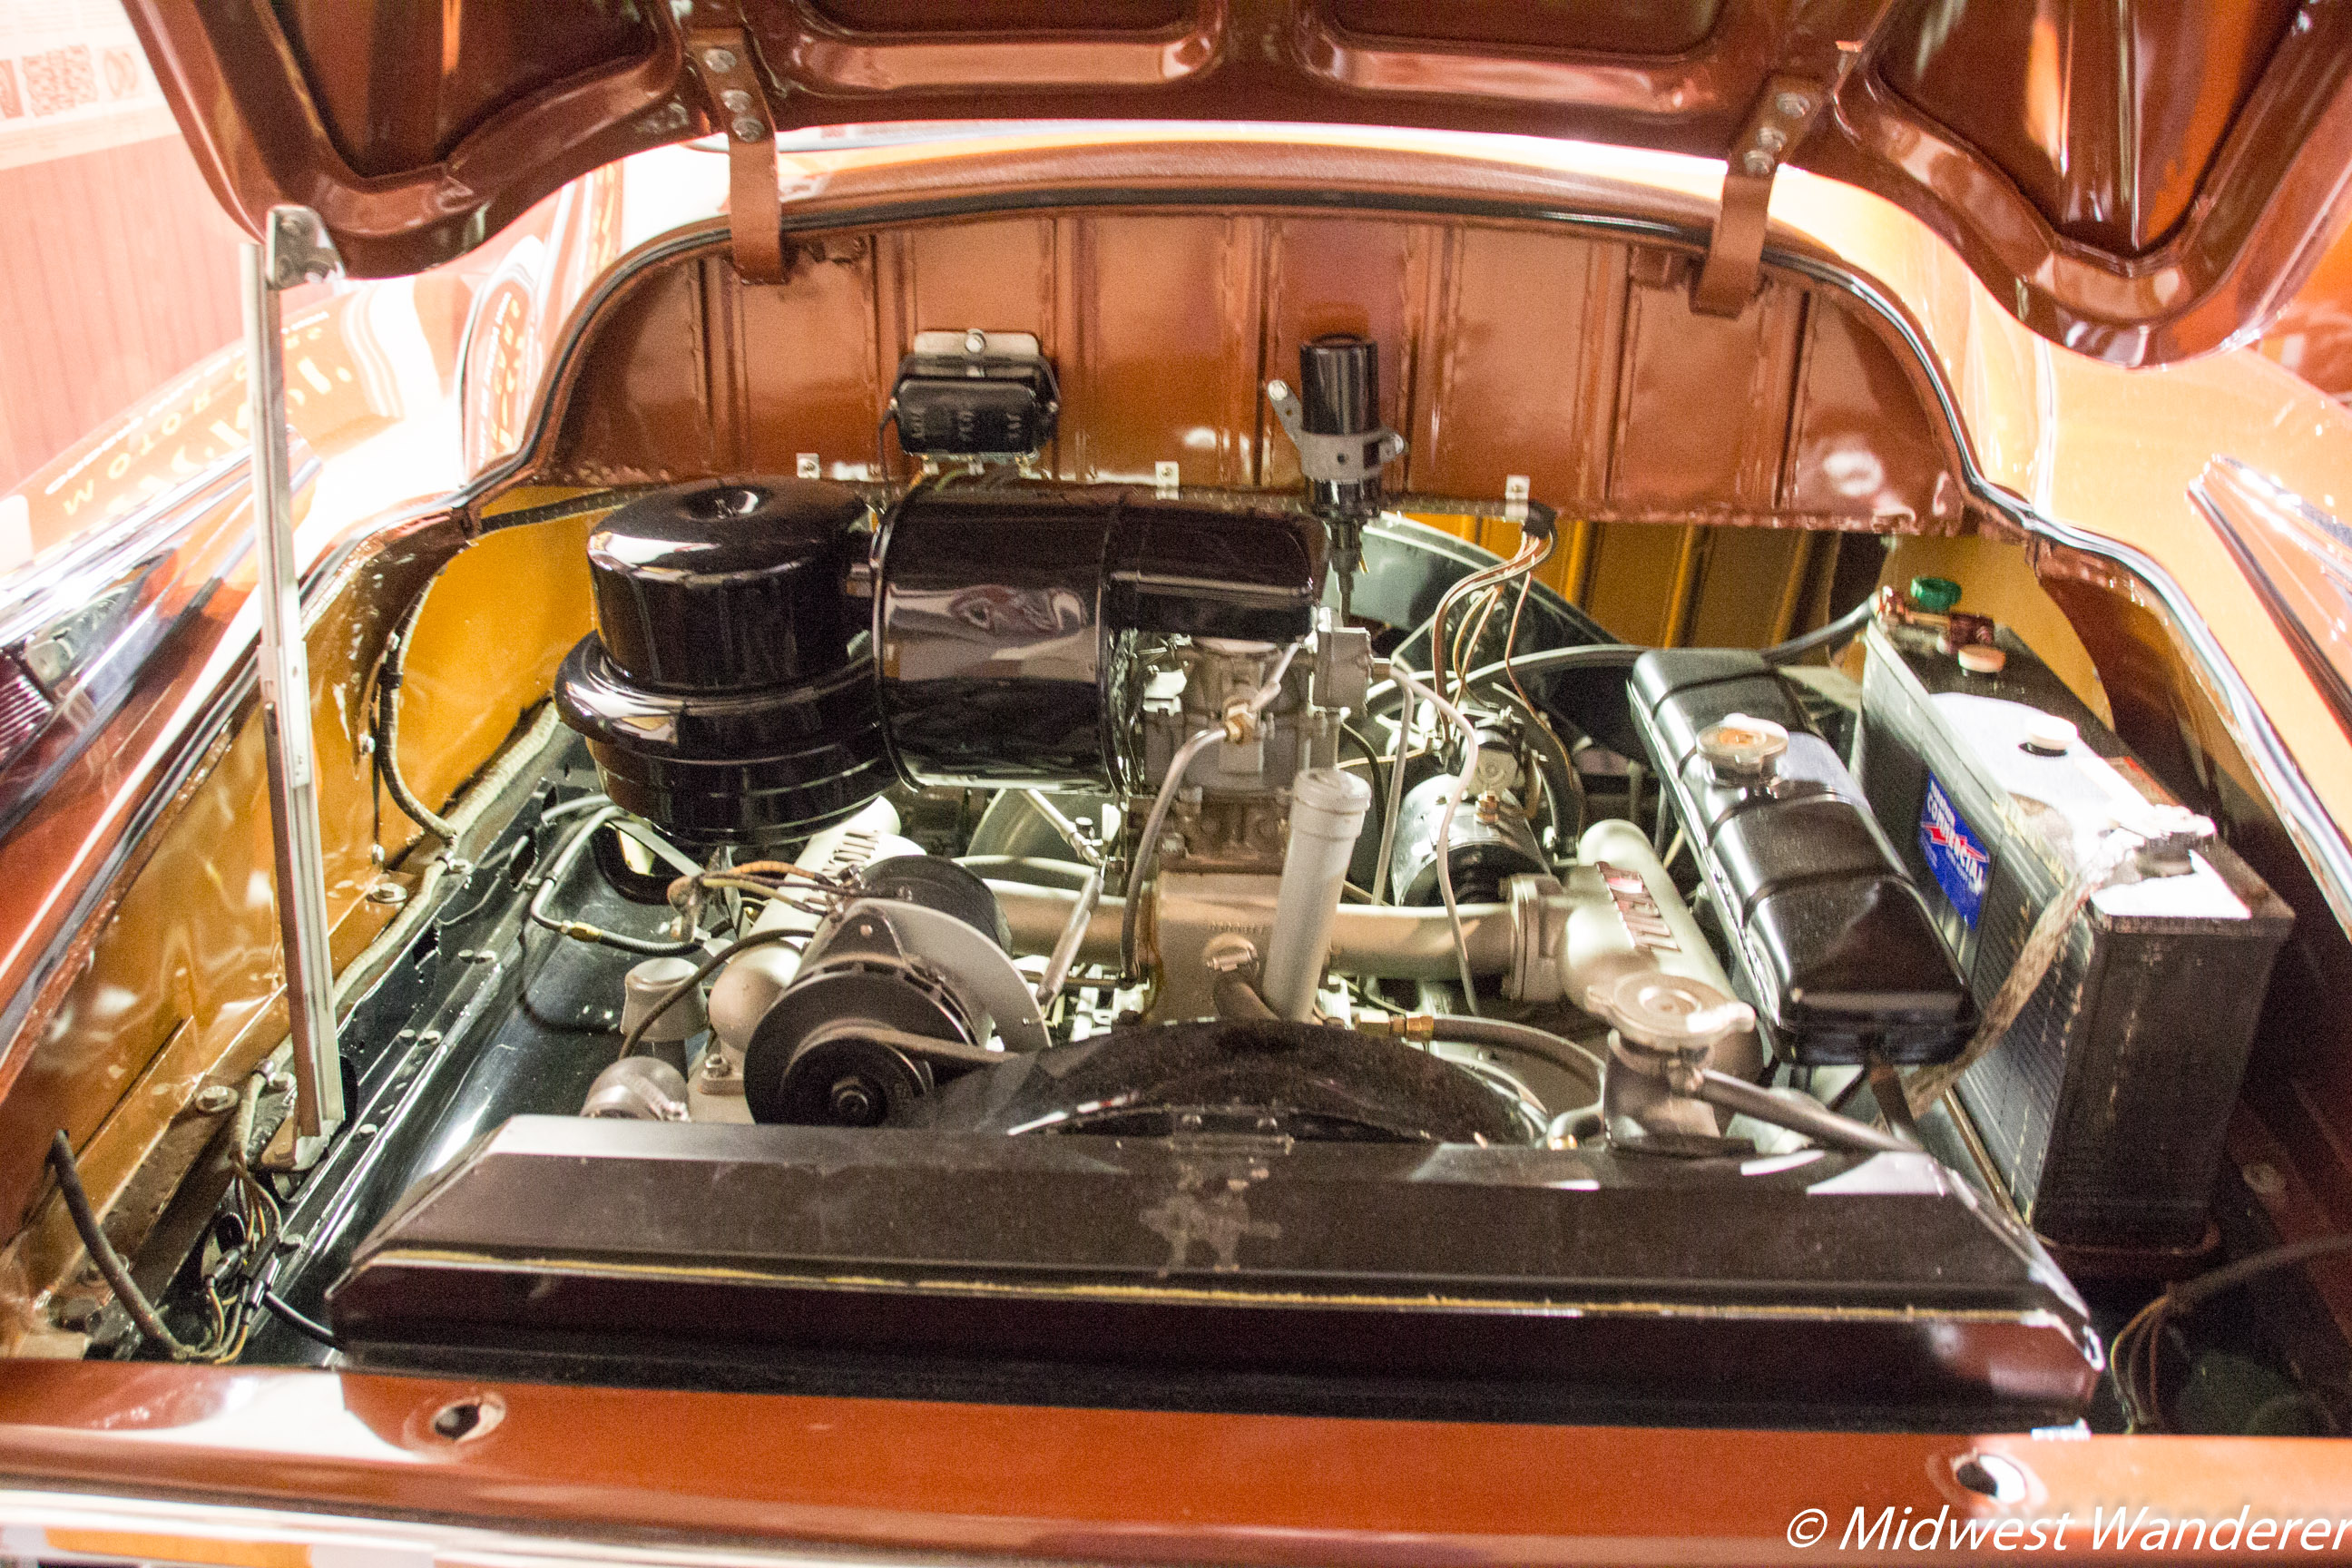 1948 Tucker #1026 Rear Engine Compartment